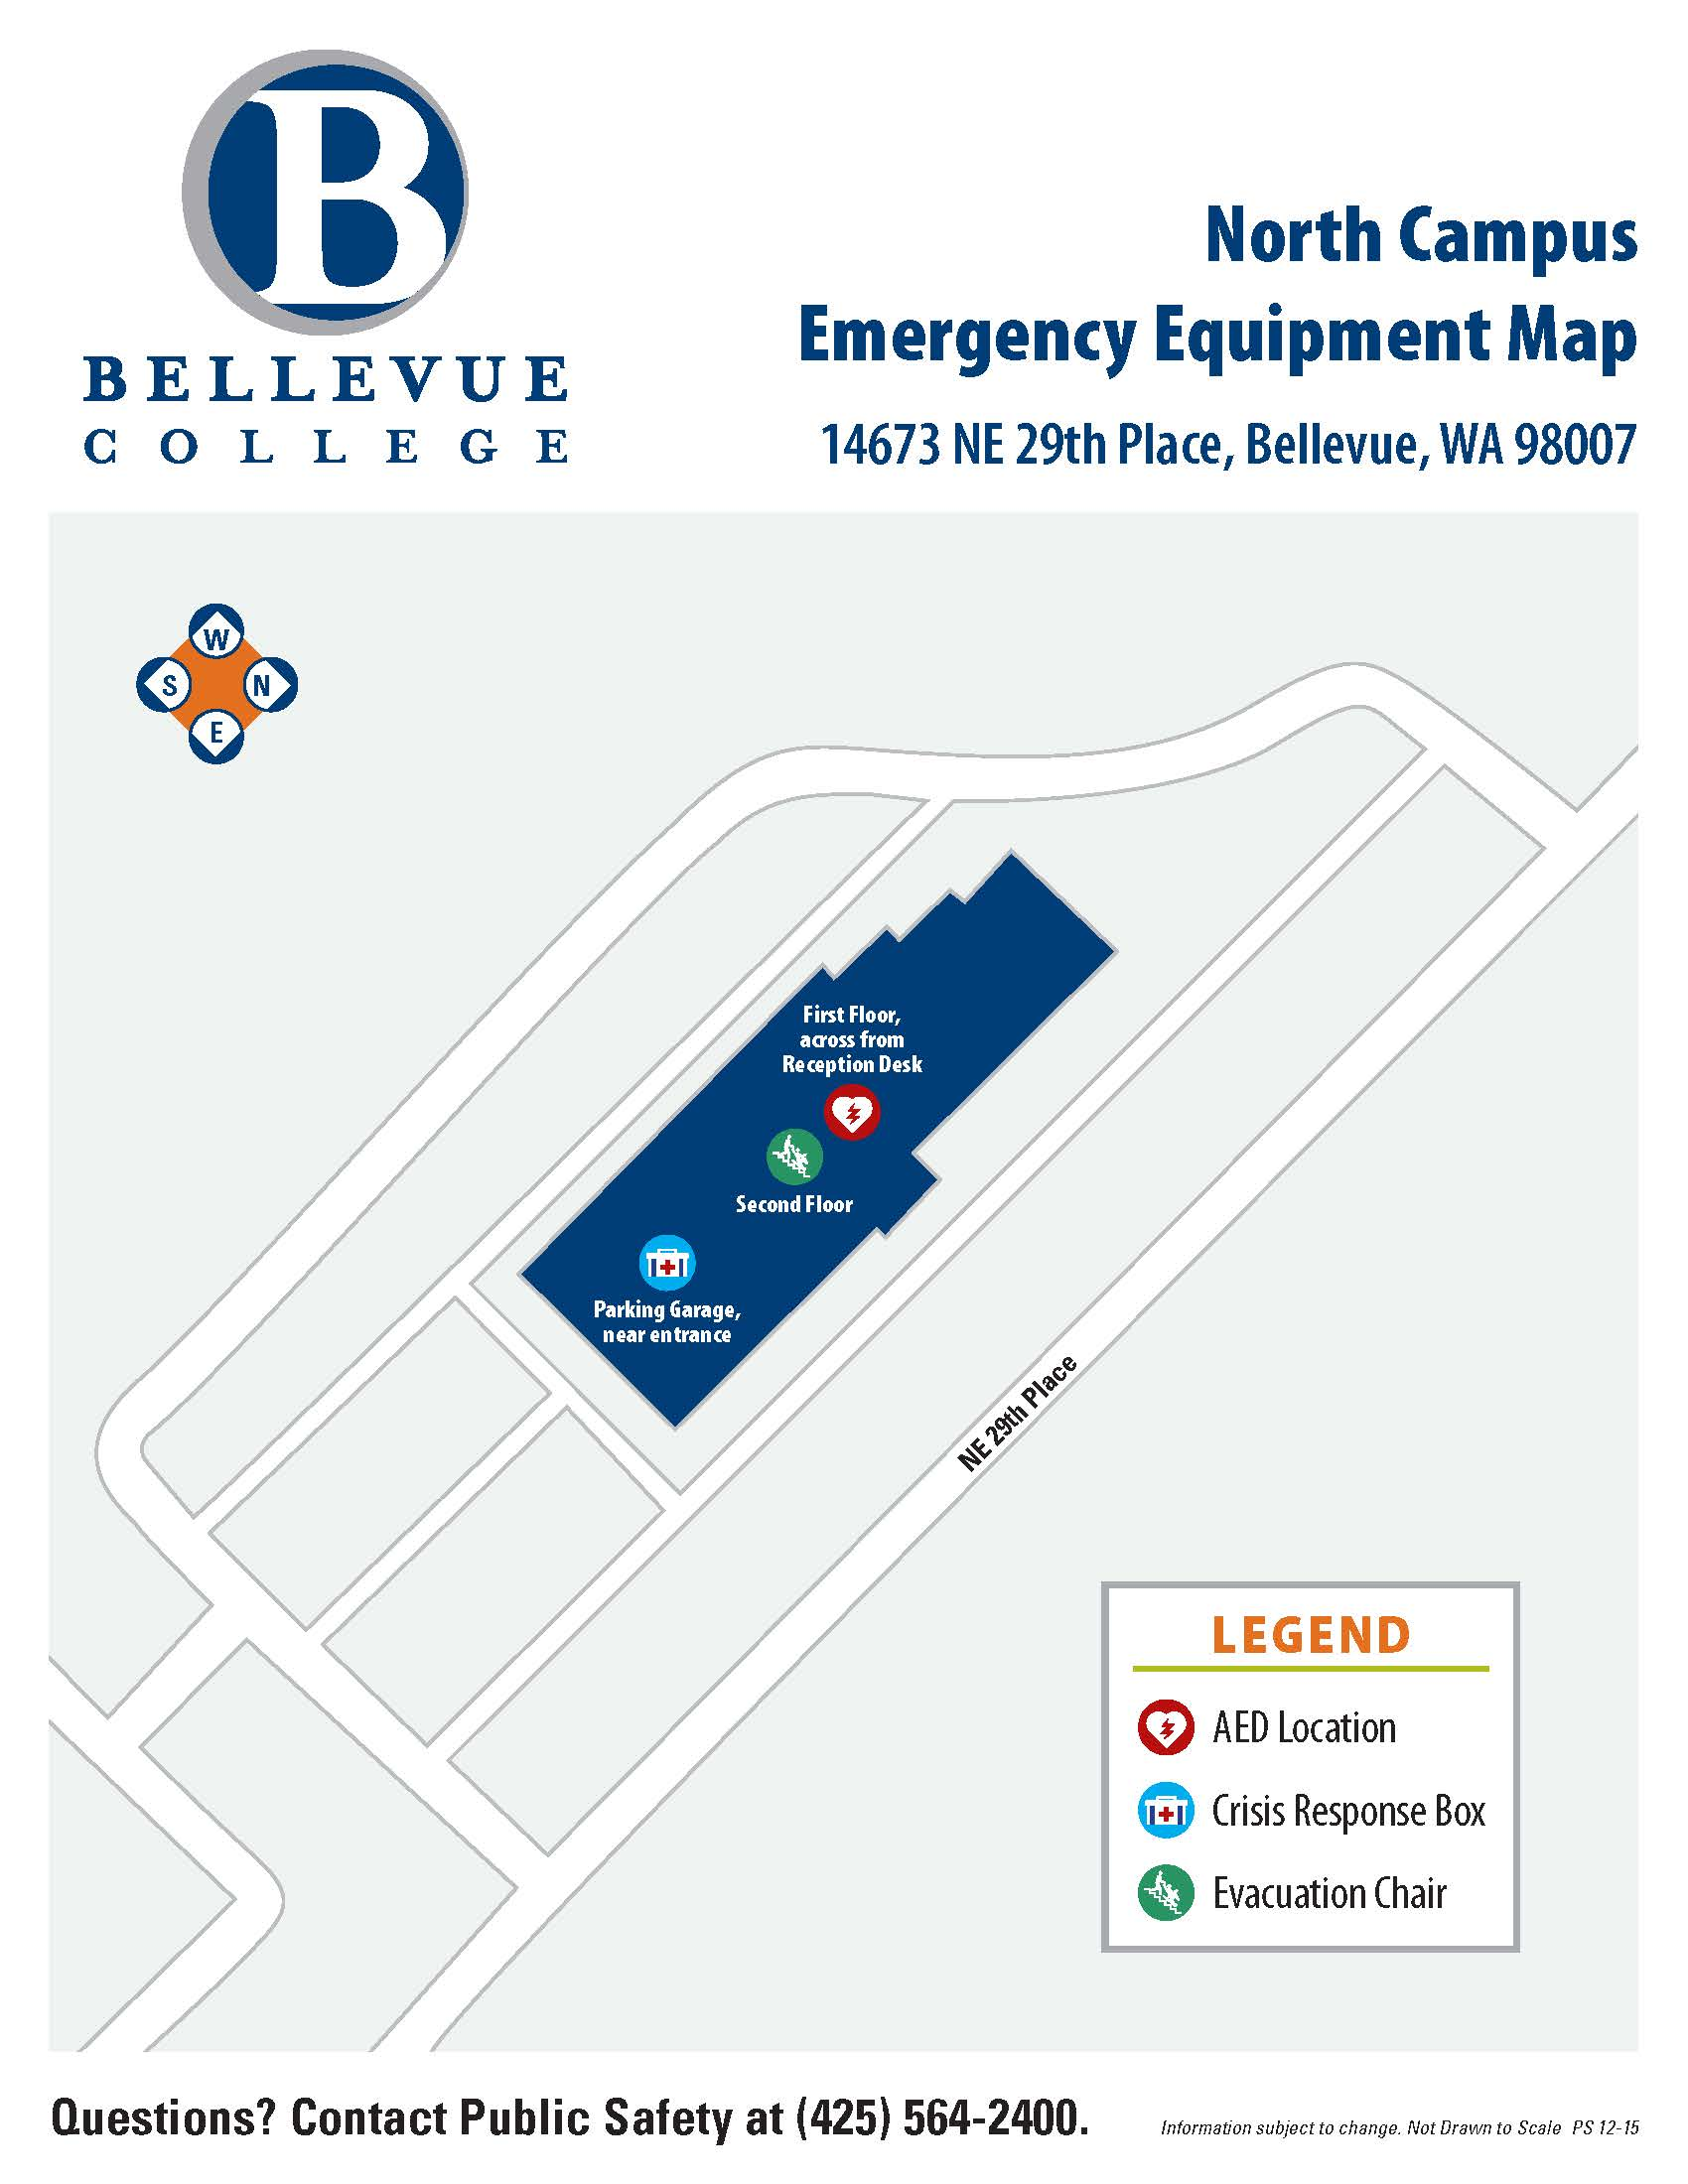 North Campus Emergency Equipment Map